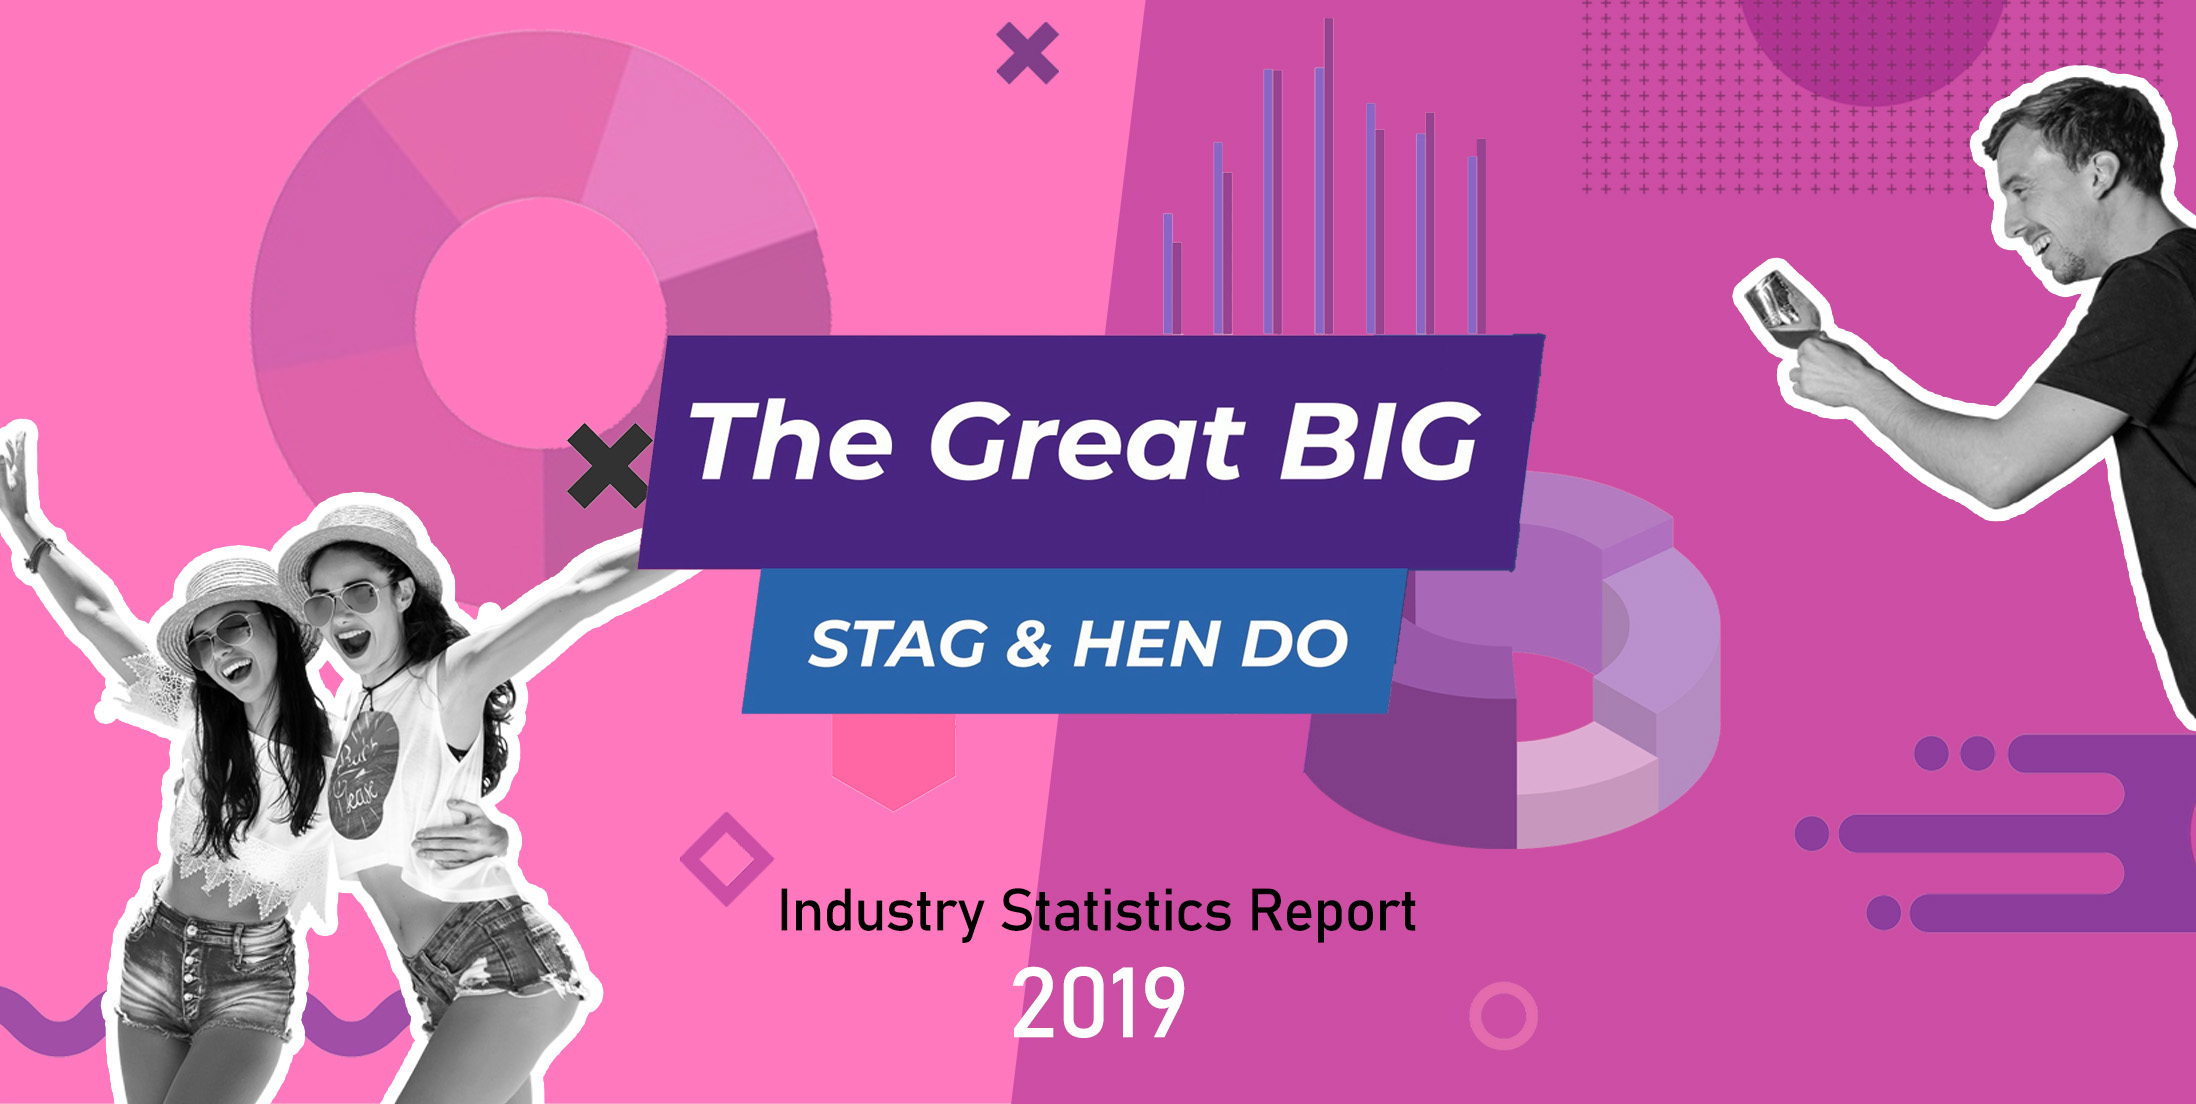 The Great Big Stag & Hen Do Trends Analysis 2019